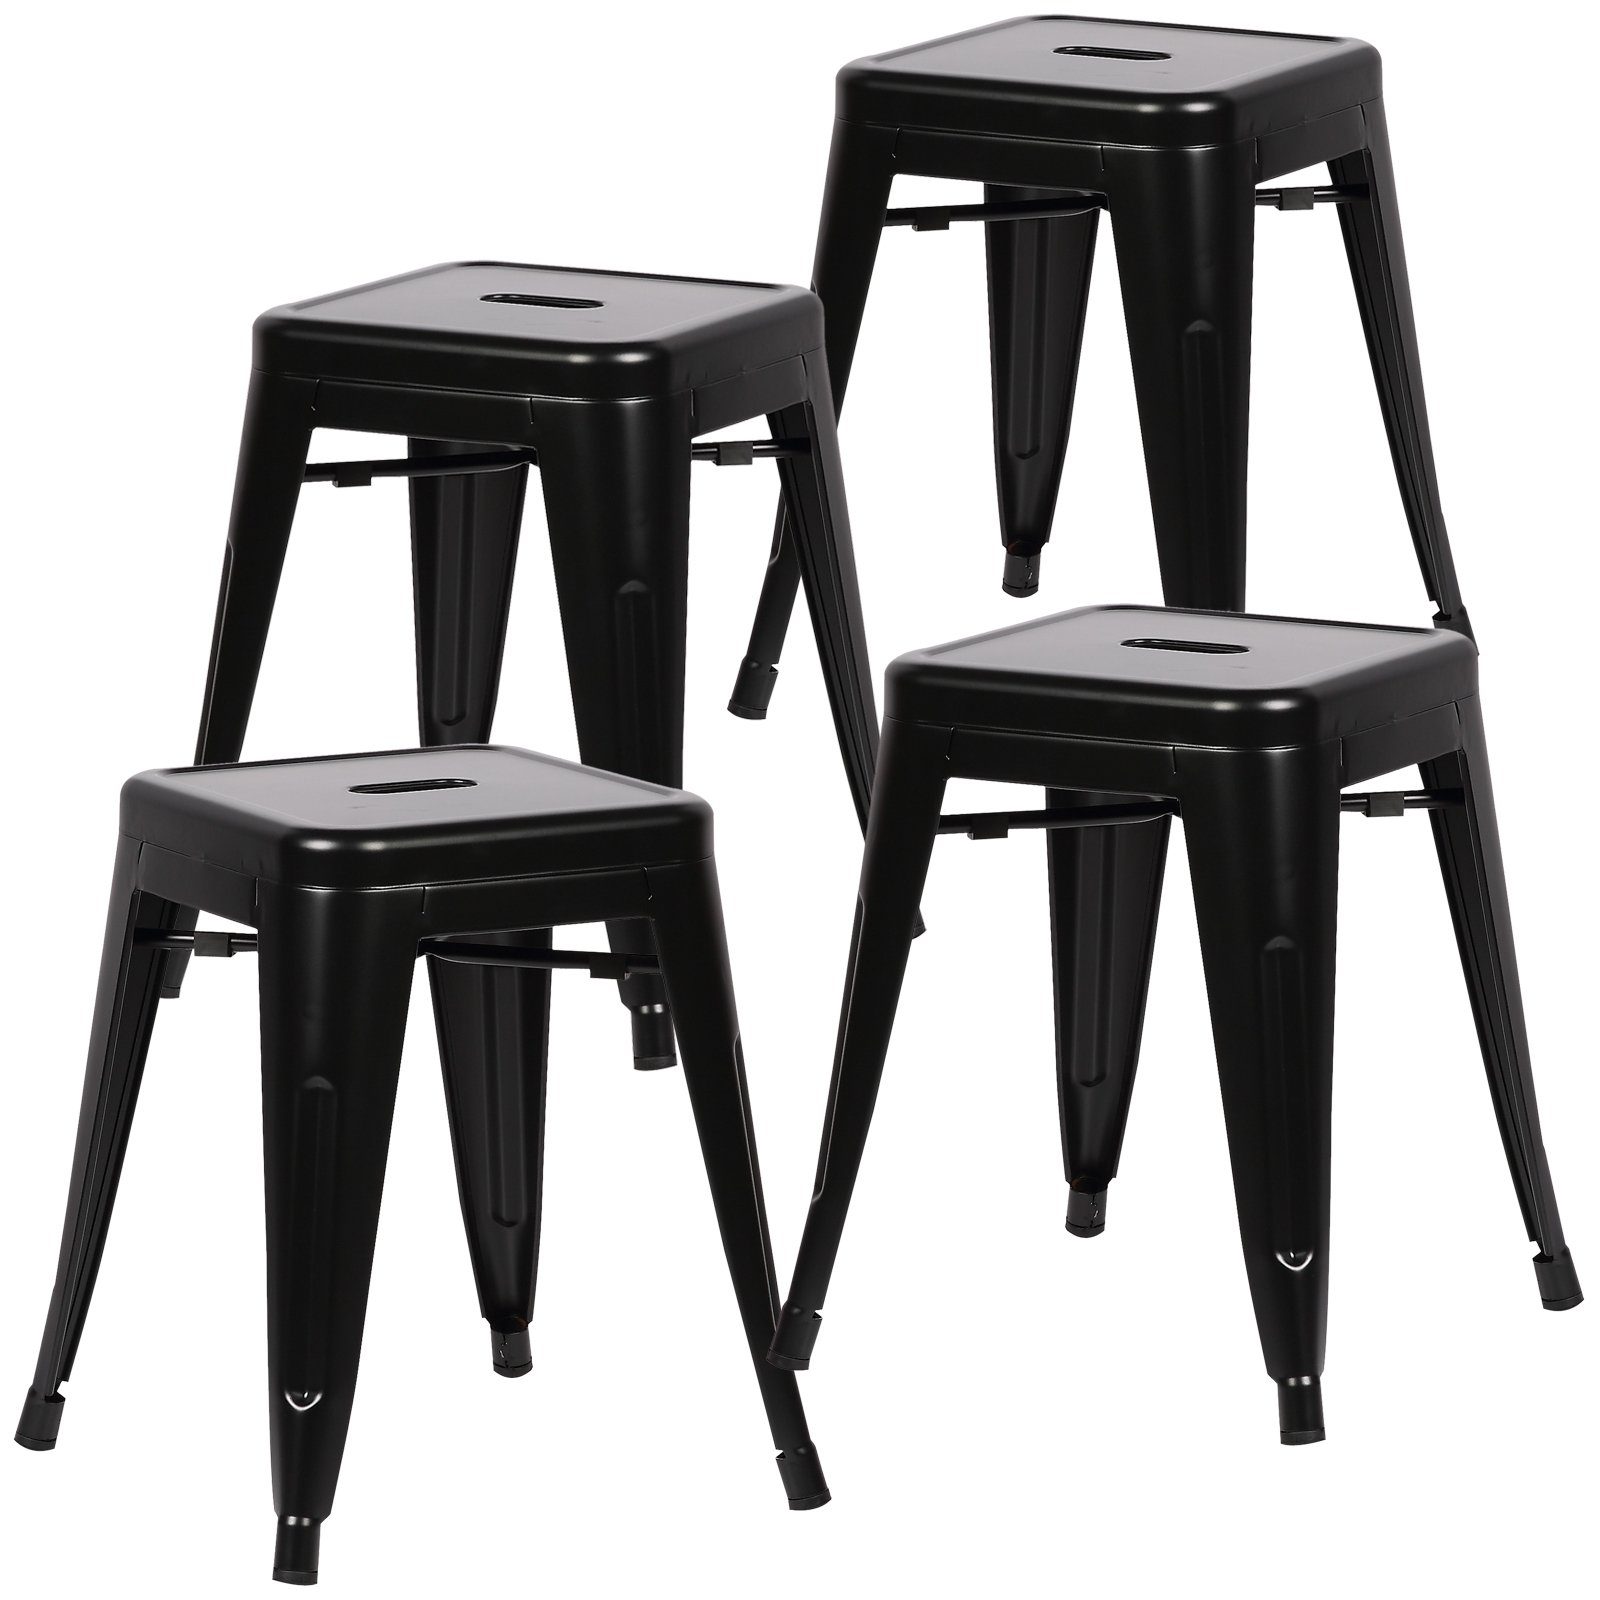 Poly and Bark Trattoria 18'' Stool in black (Set of 4) by Poly and Bark